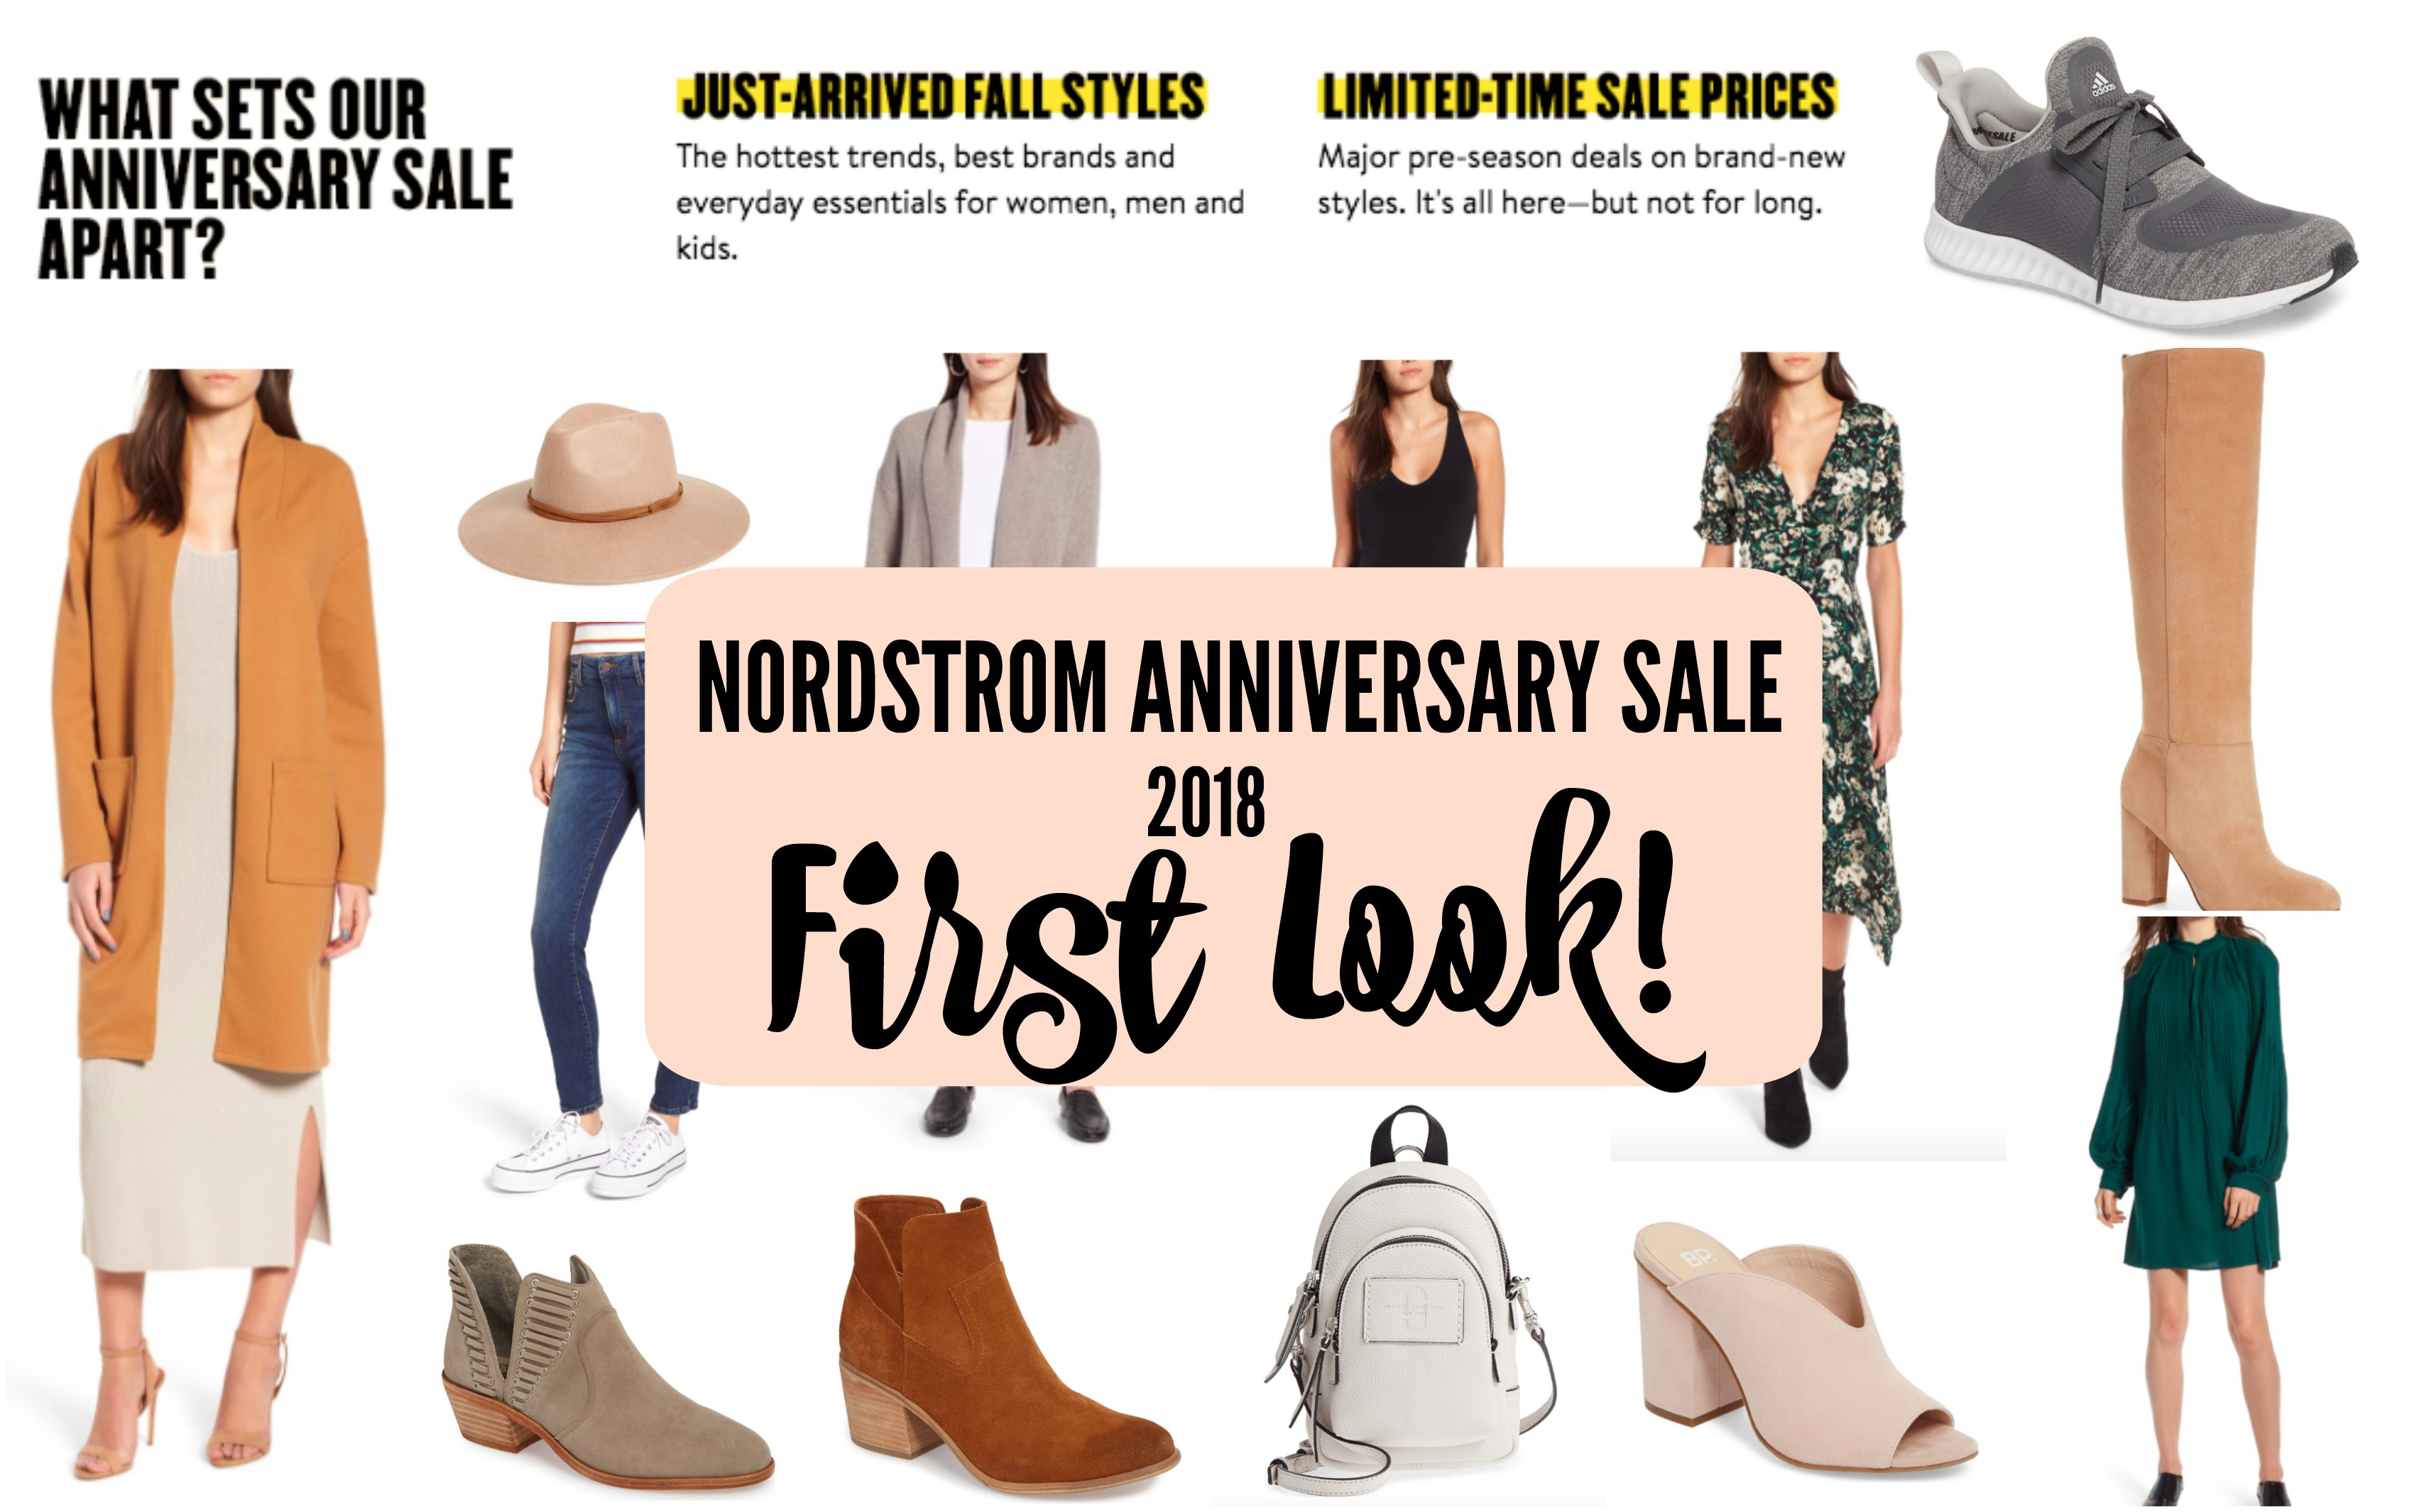 379c080259e3 Nordstrom Anniversary Sale 2018  First Look   How to Shop!